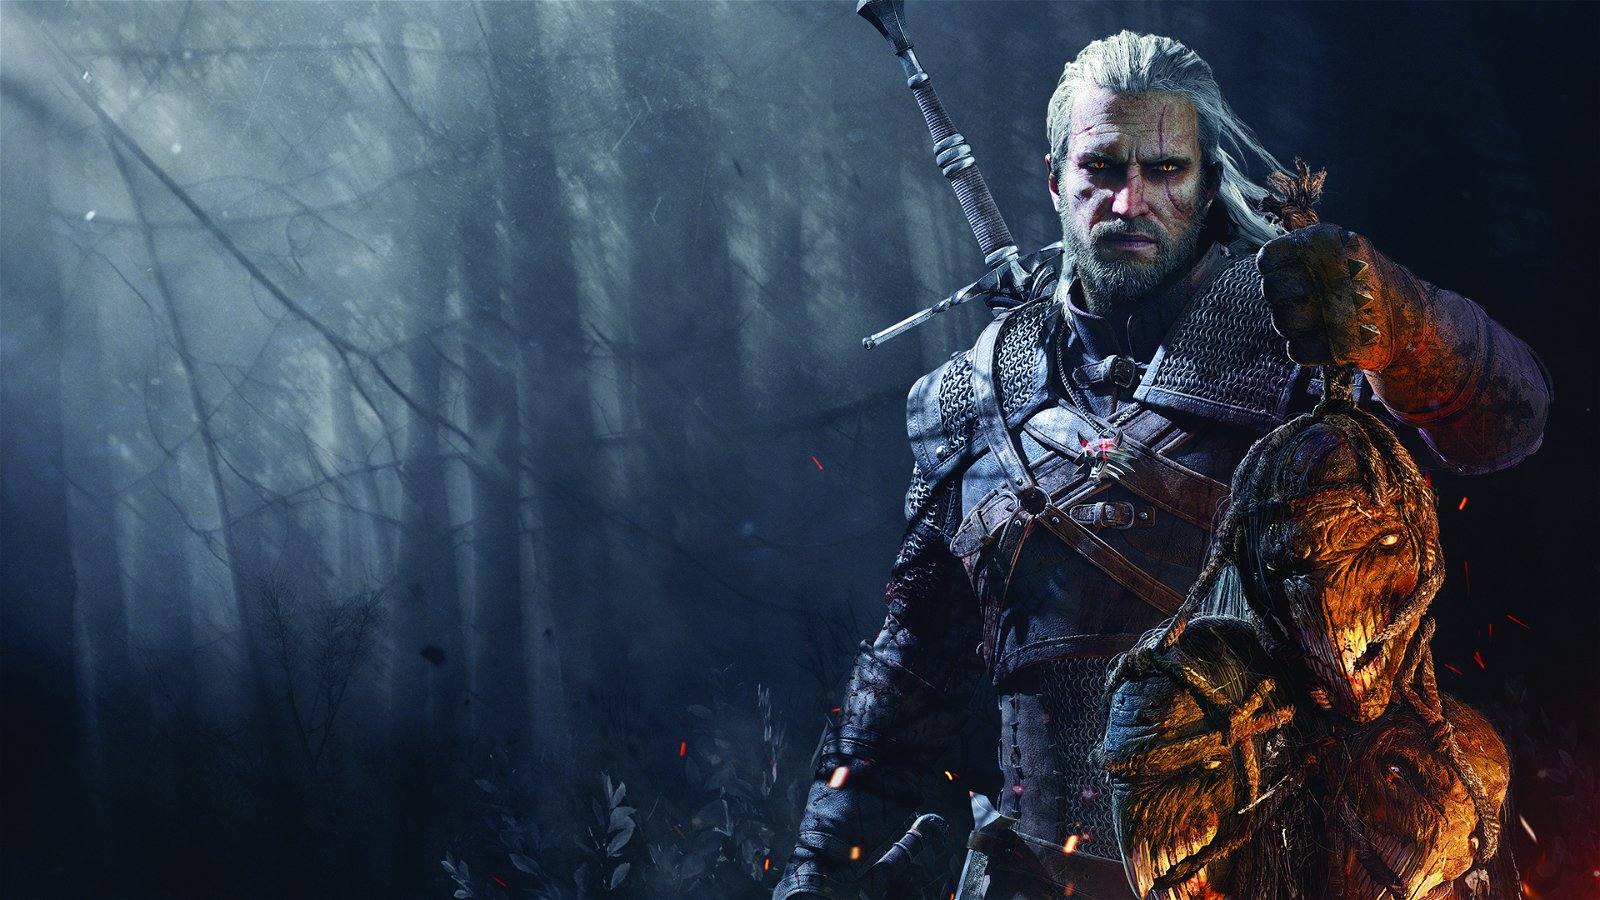 Opinion: Should The Witcher 3 be Game of the Year 5